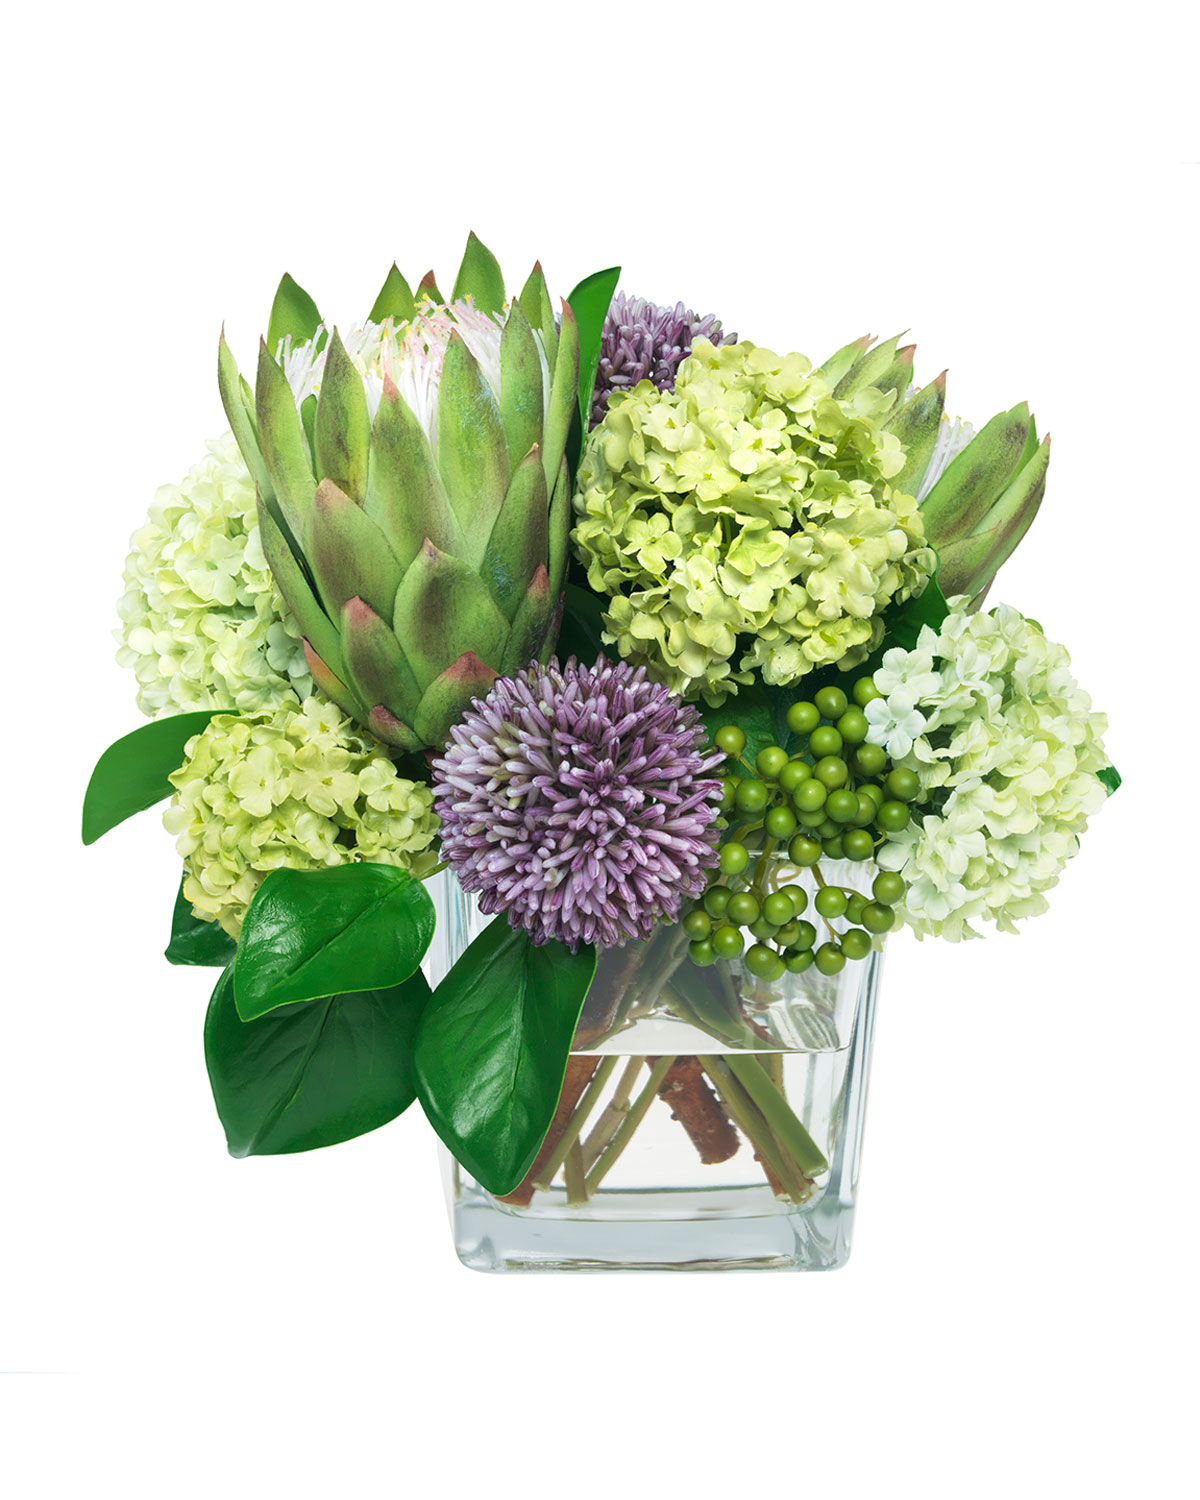 251 & Protea Flowers in Glass Vase